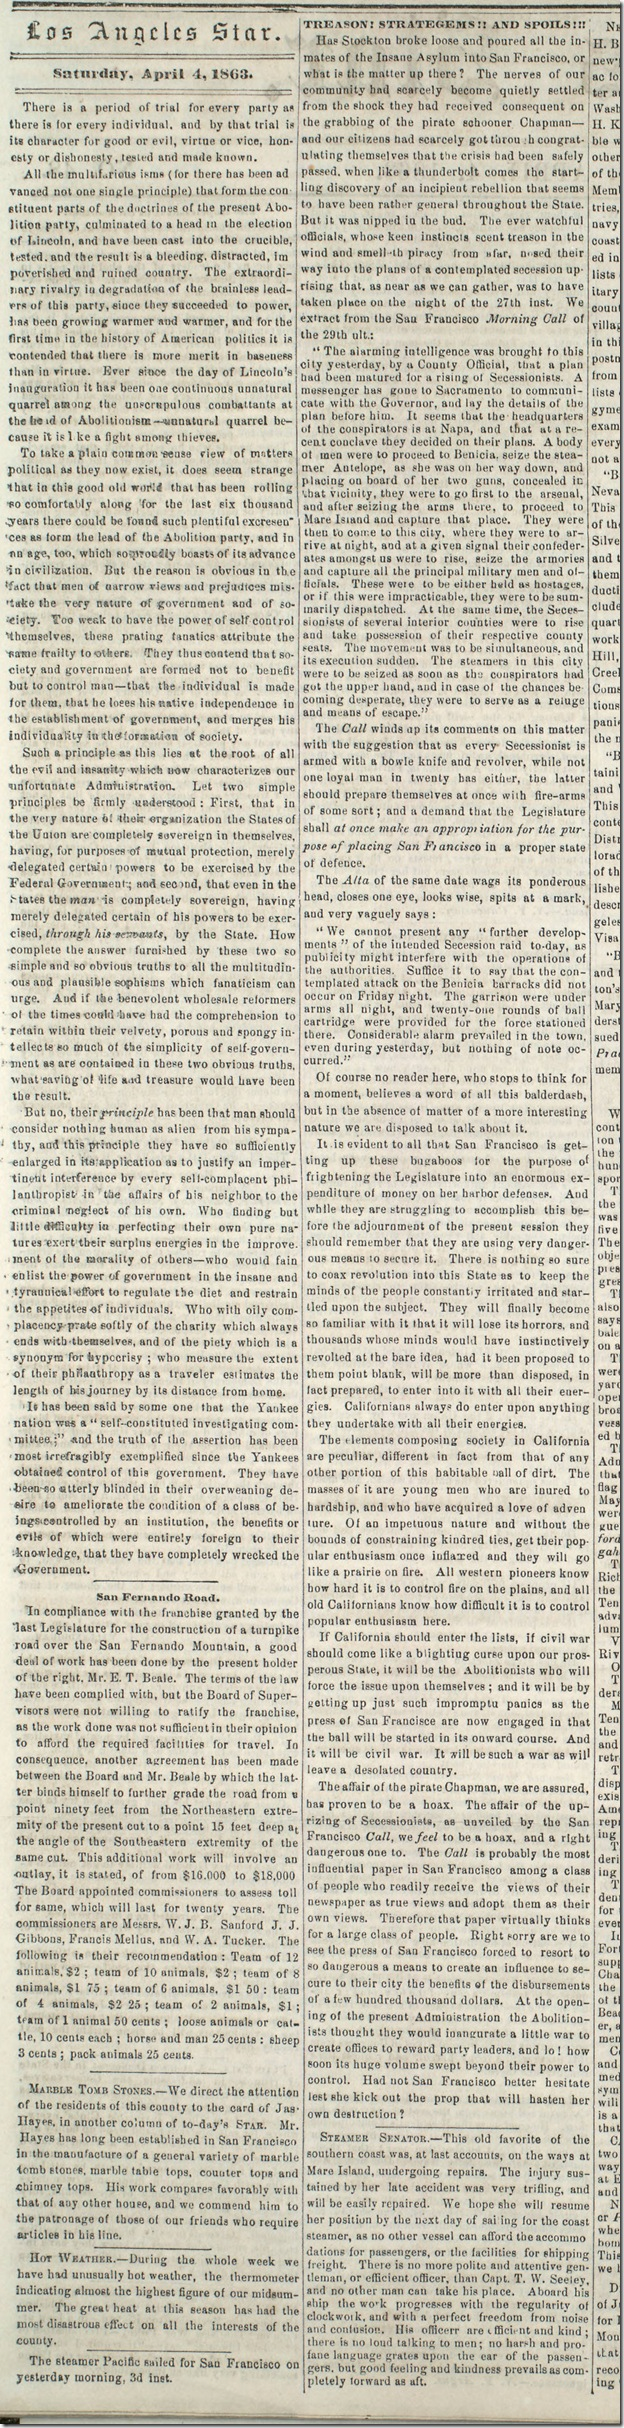 1863_0404_los_angeles_star_Page_2